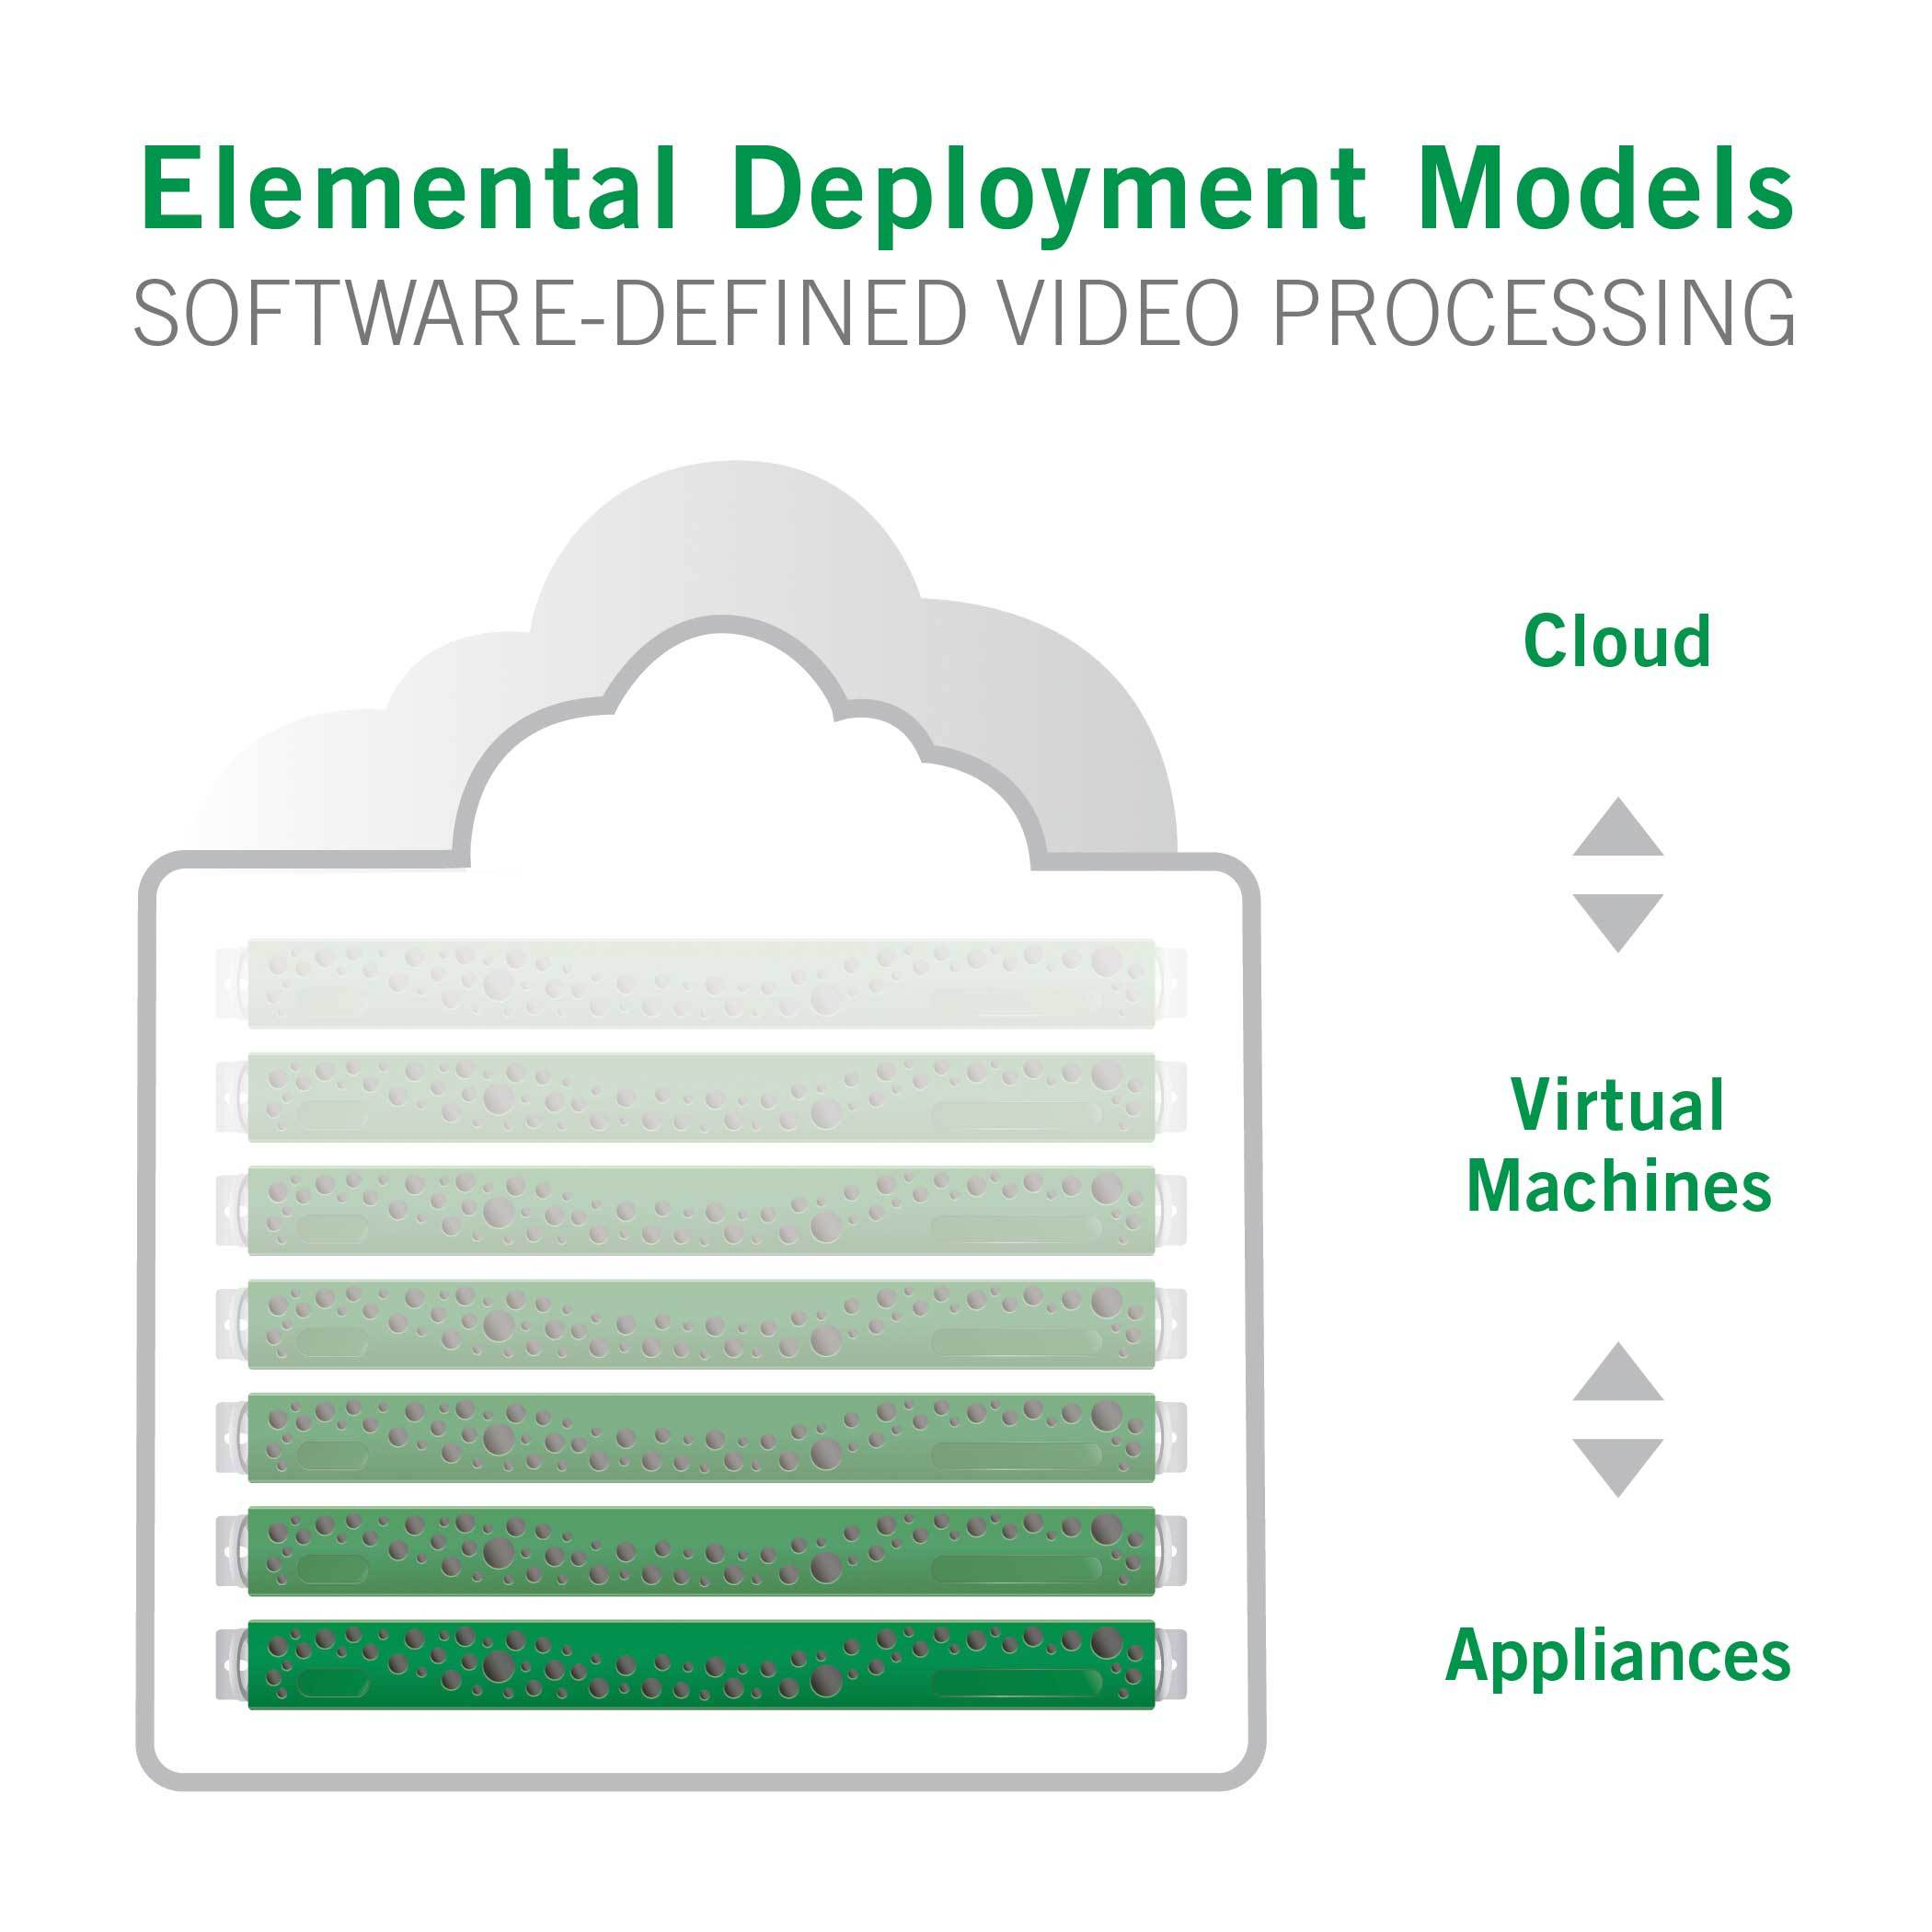 Elemental video processing software now runs on multiple processing architectures -- appliances, blade, VM and cloud. (Graphic: Business Wire)